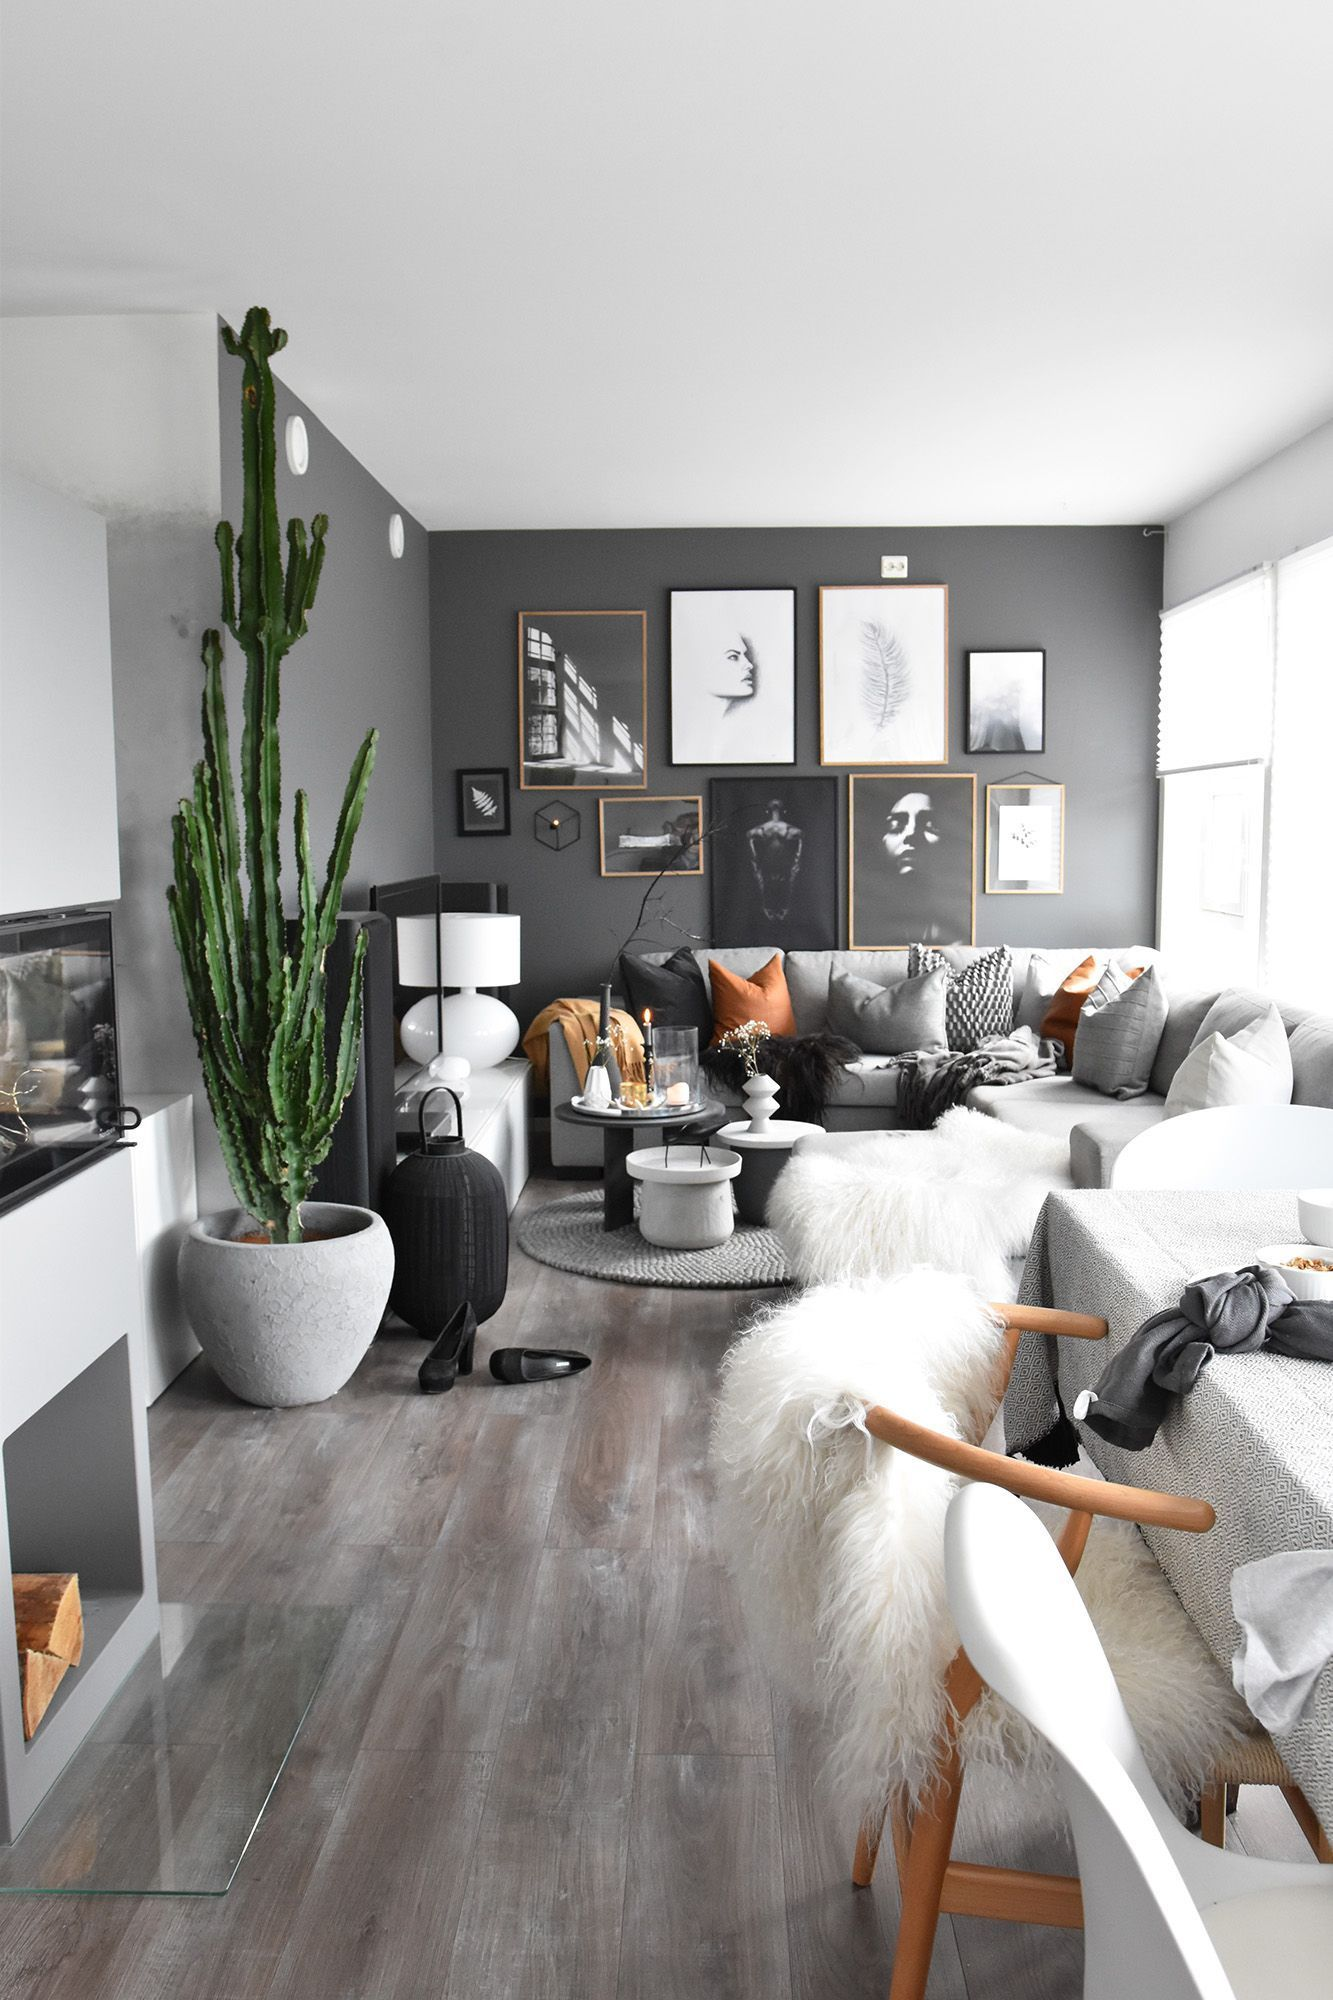 Deco Salon Zen Moderne Dark Grey Black Wall Living Room Idea With Indoor Plants And